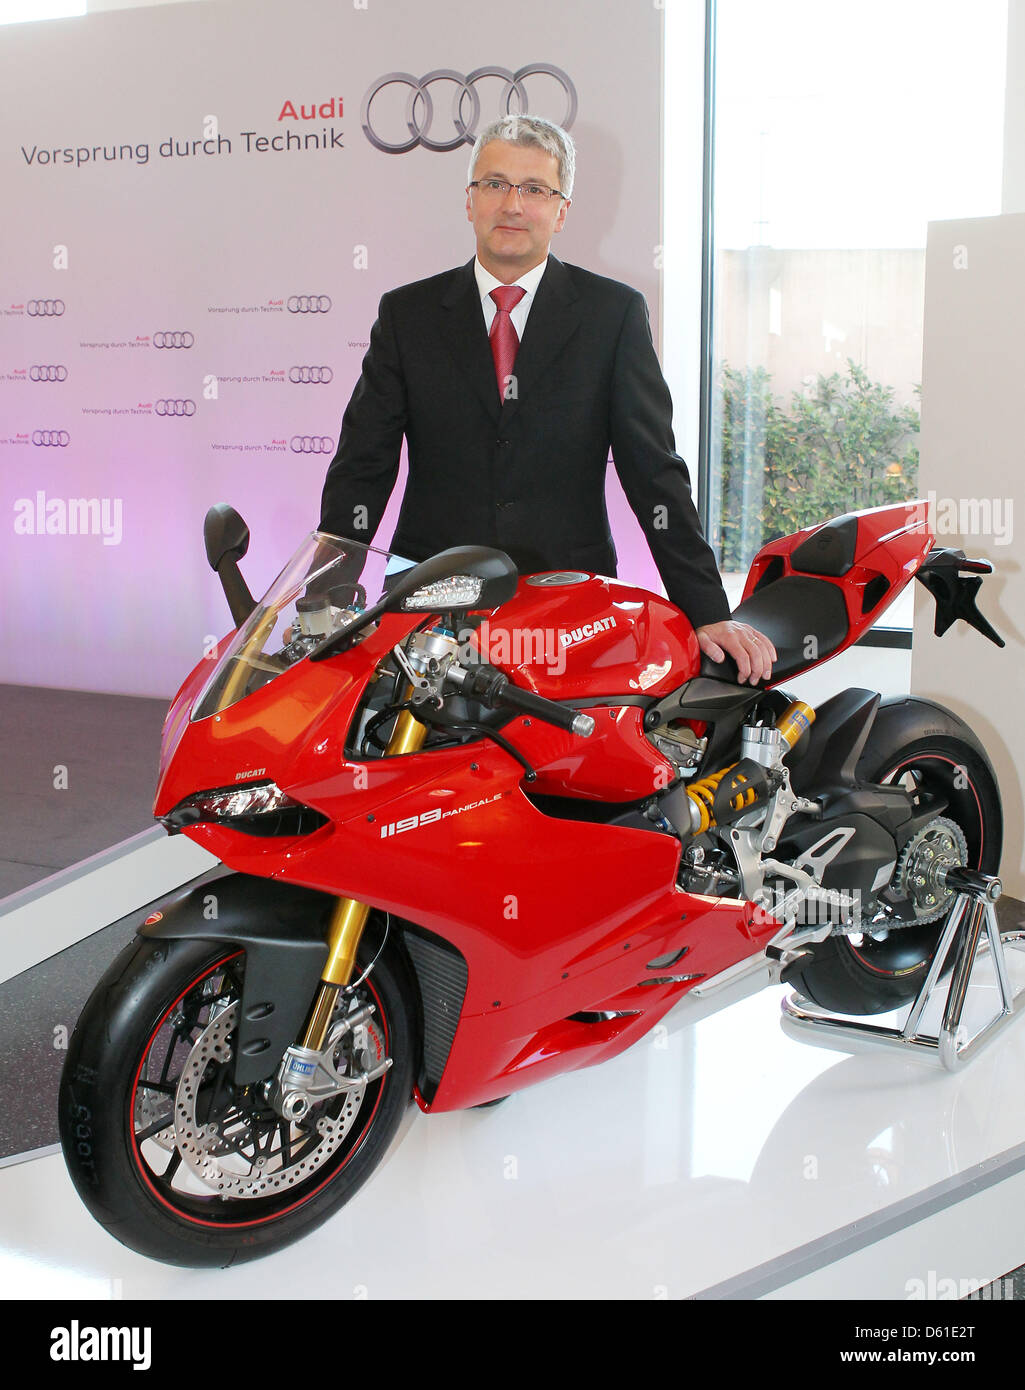 audi ceo rupert stadler poses next to a ducati motorbike at a press stock photo alamy https www alamy com stock photo audi ceo rupert stadler poses next to a ducati motorbike at a press 55352048 html